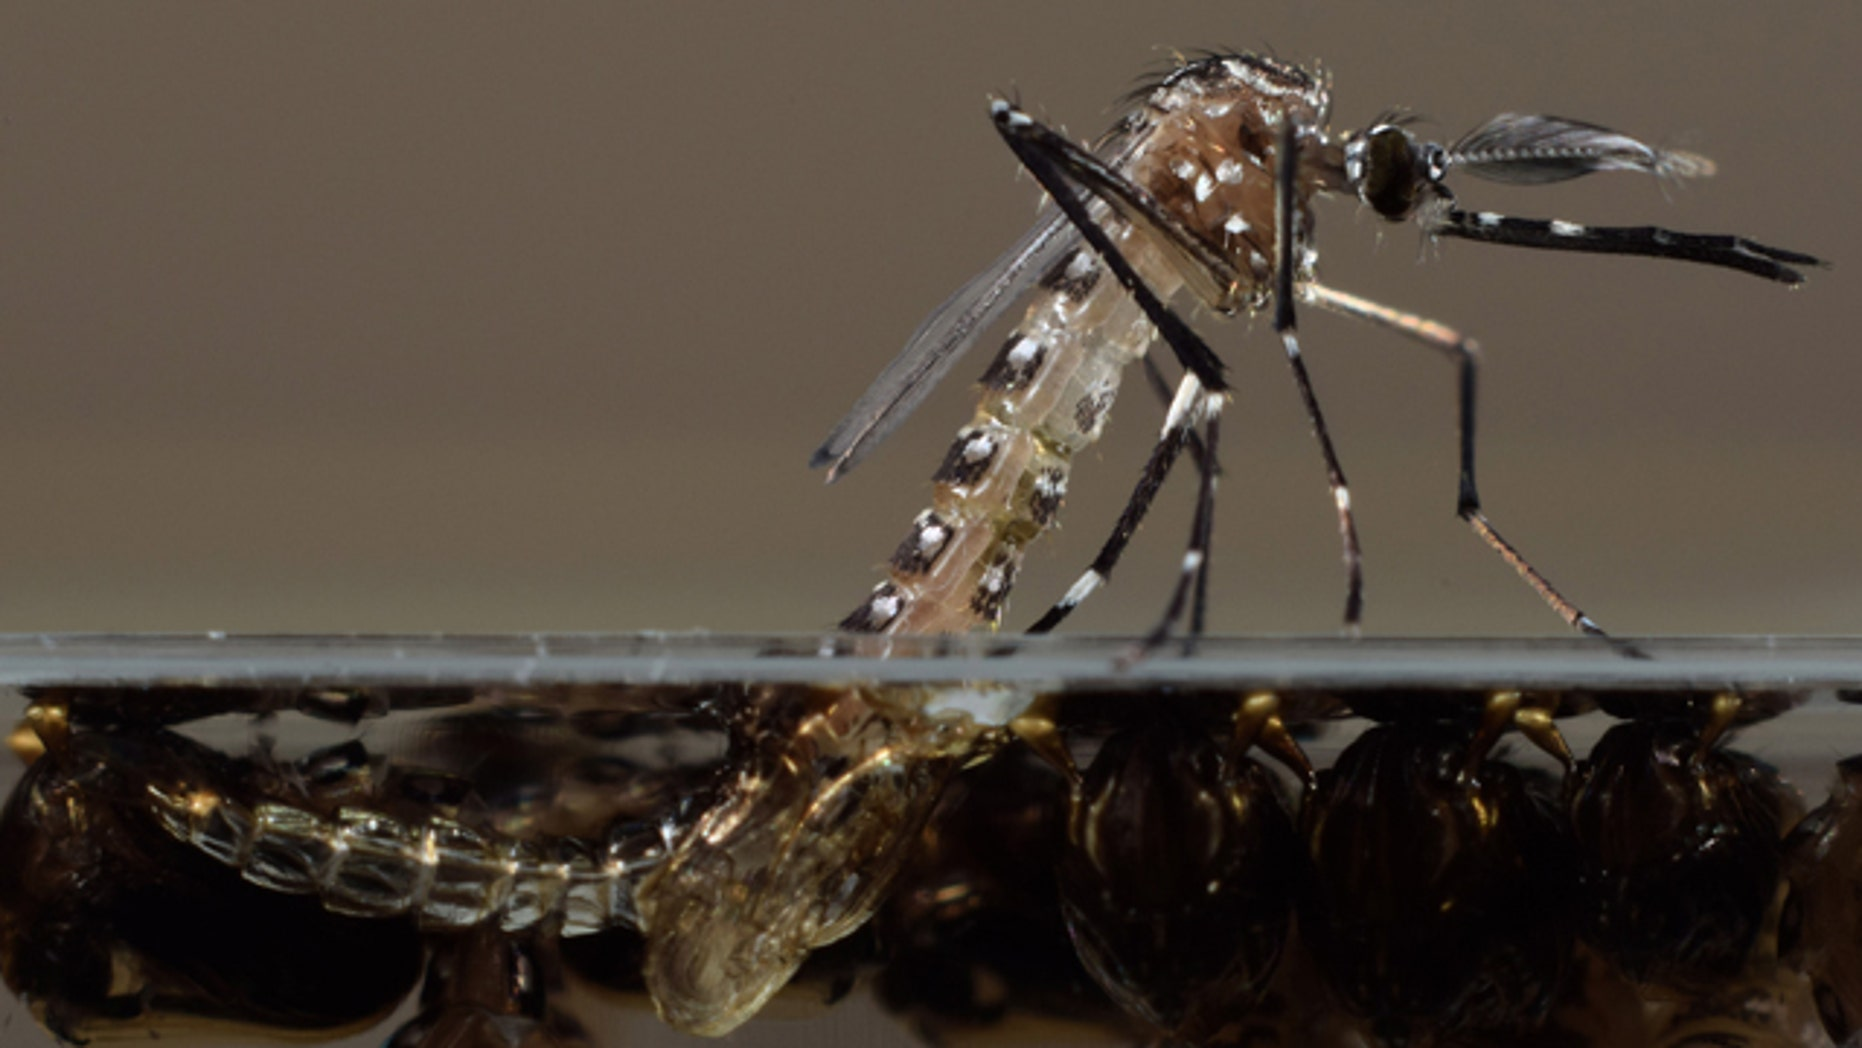 This undated photo made available by Oxitec shows a genetically modified Aedes aegypti mosquito in their U.K. lab. The U.S. Food and Drug Administration is considering releasing the non-biting male Aedes aegypti mosquitoes modified by Oxitec to pass along a birth defect to their progeny, thus killing off the next generation of the mosquitoes that can carry dengue and chikungunya. The FDA is planning to release the mosquitos in a neighborhood of 444 homes near Key West, Fla. (AP Photo/Oxitec, Derric Nimmo)